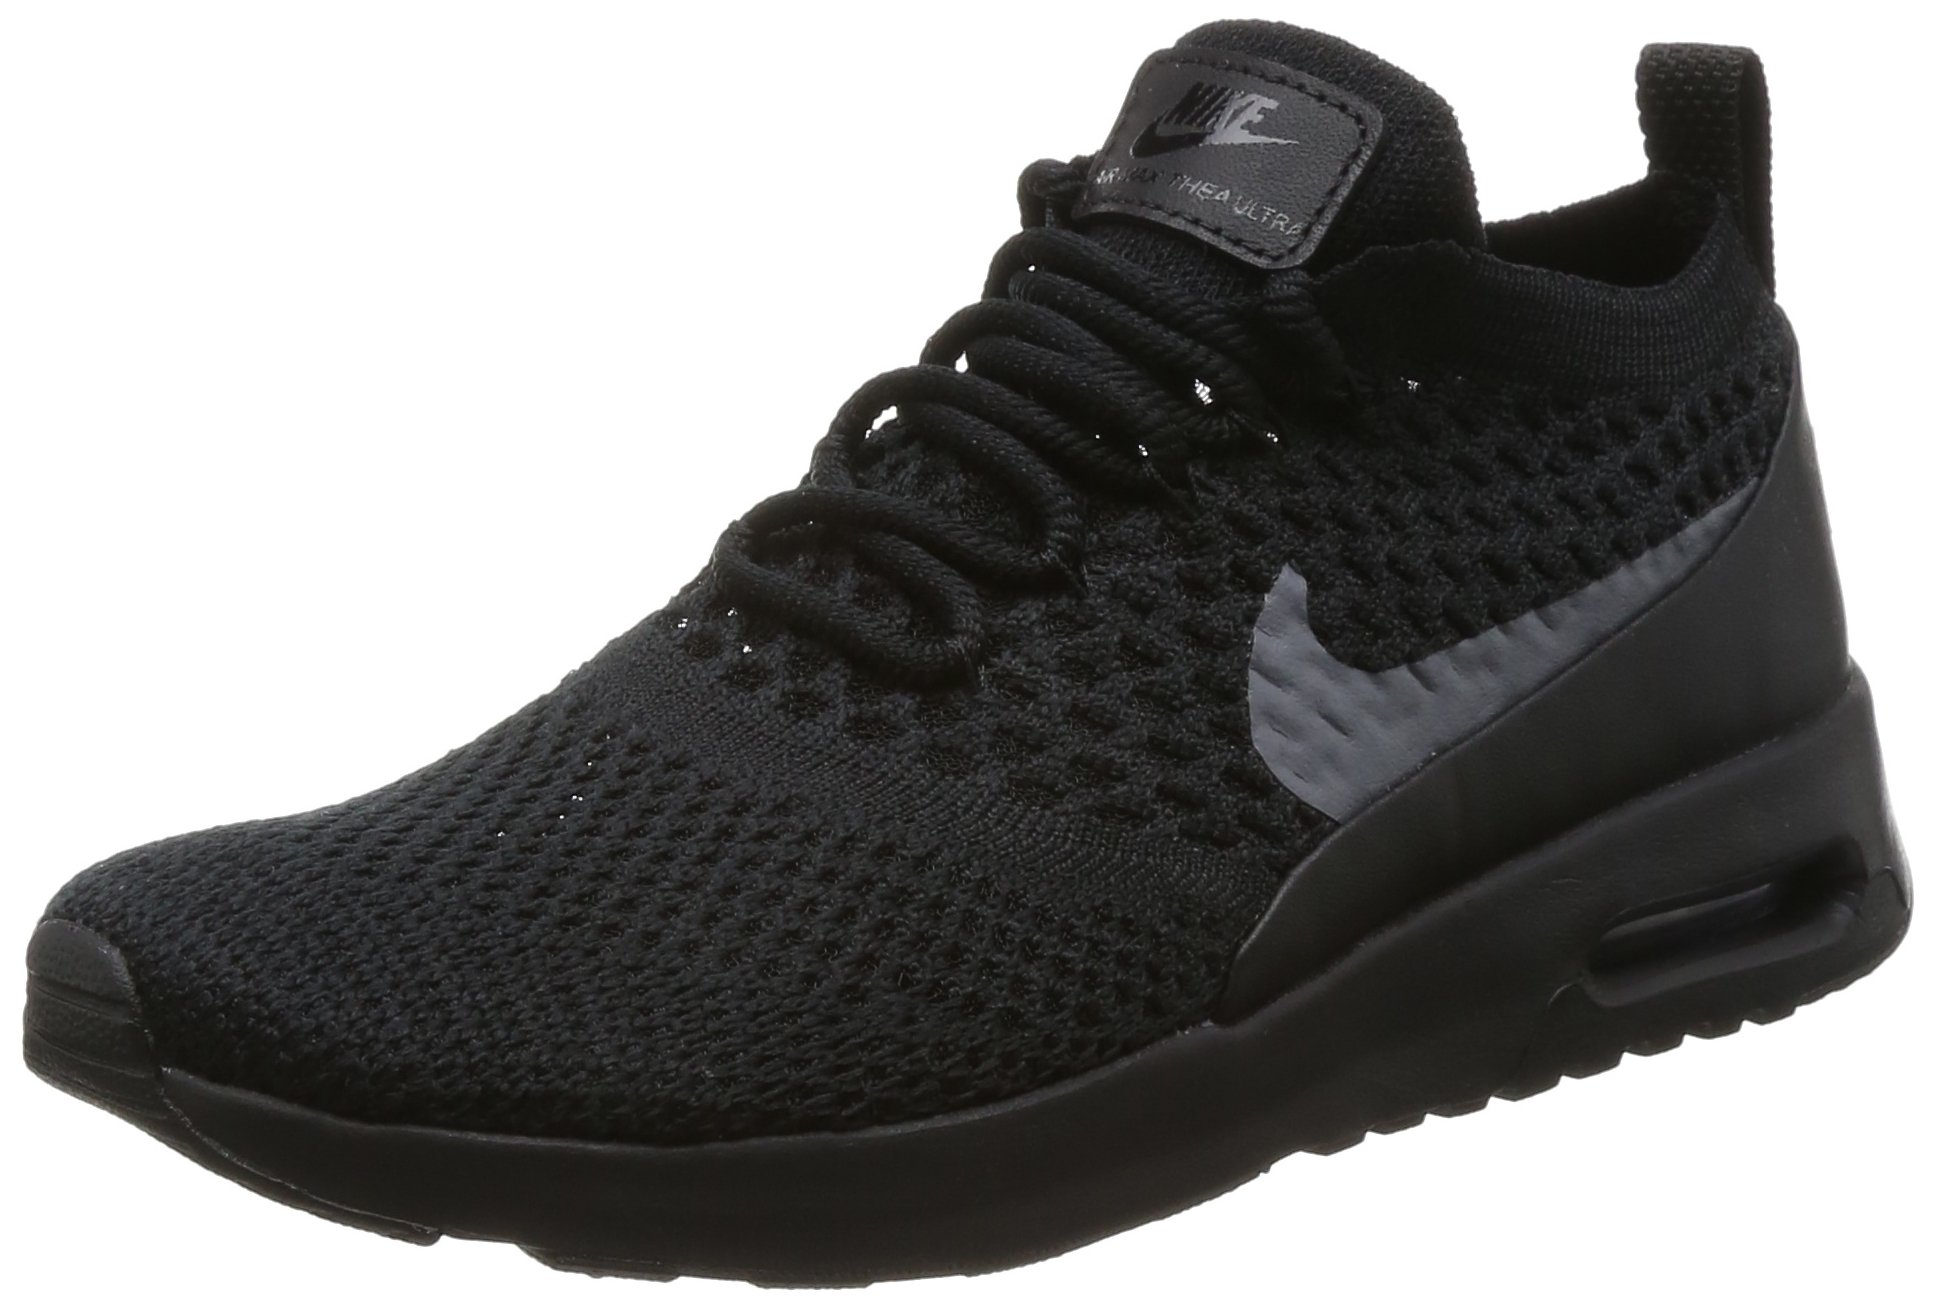 NIKE Women's Air Max Thea Ultra Flyknit Trainers, (Black/Dark Grey), 7 UK 41 EU